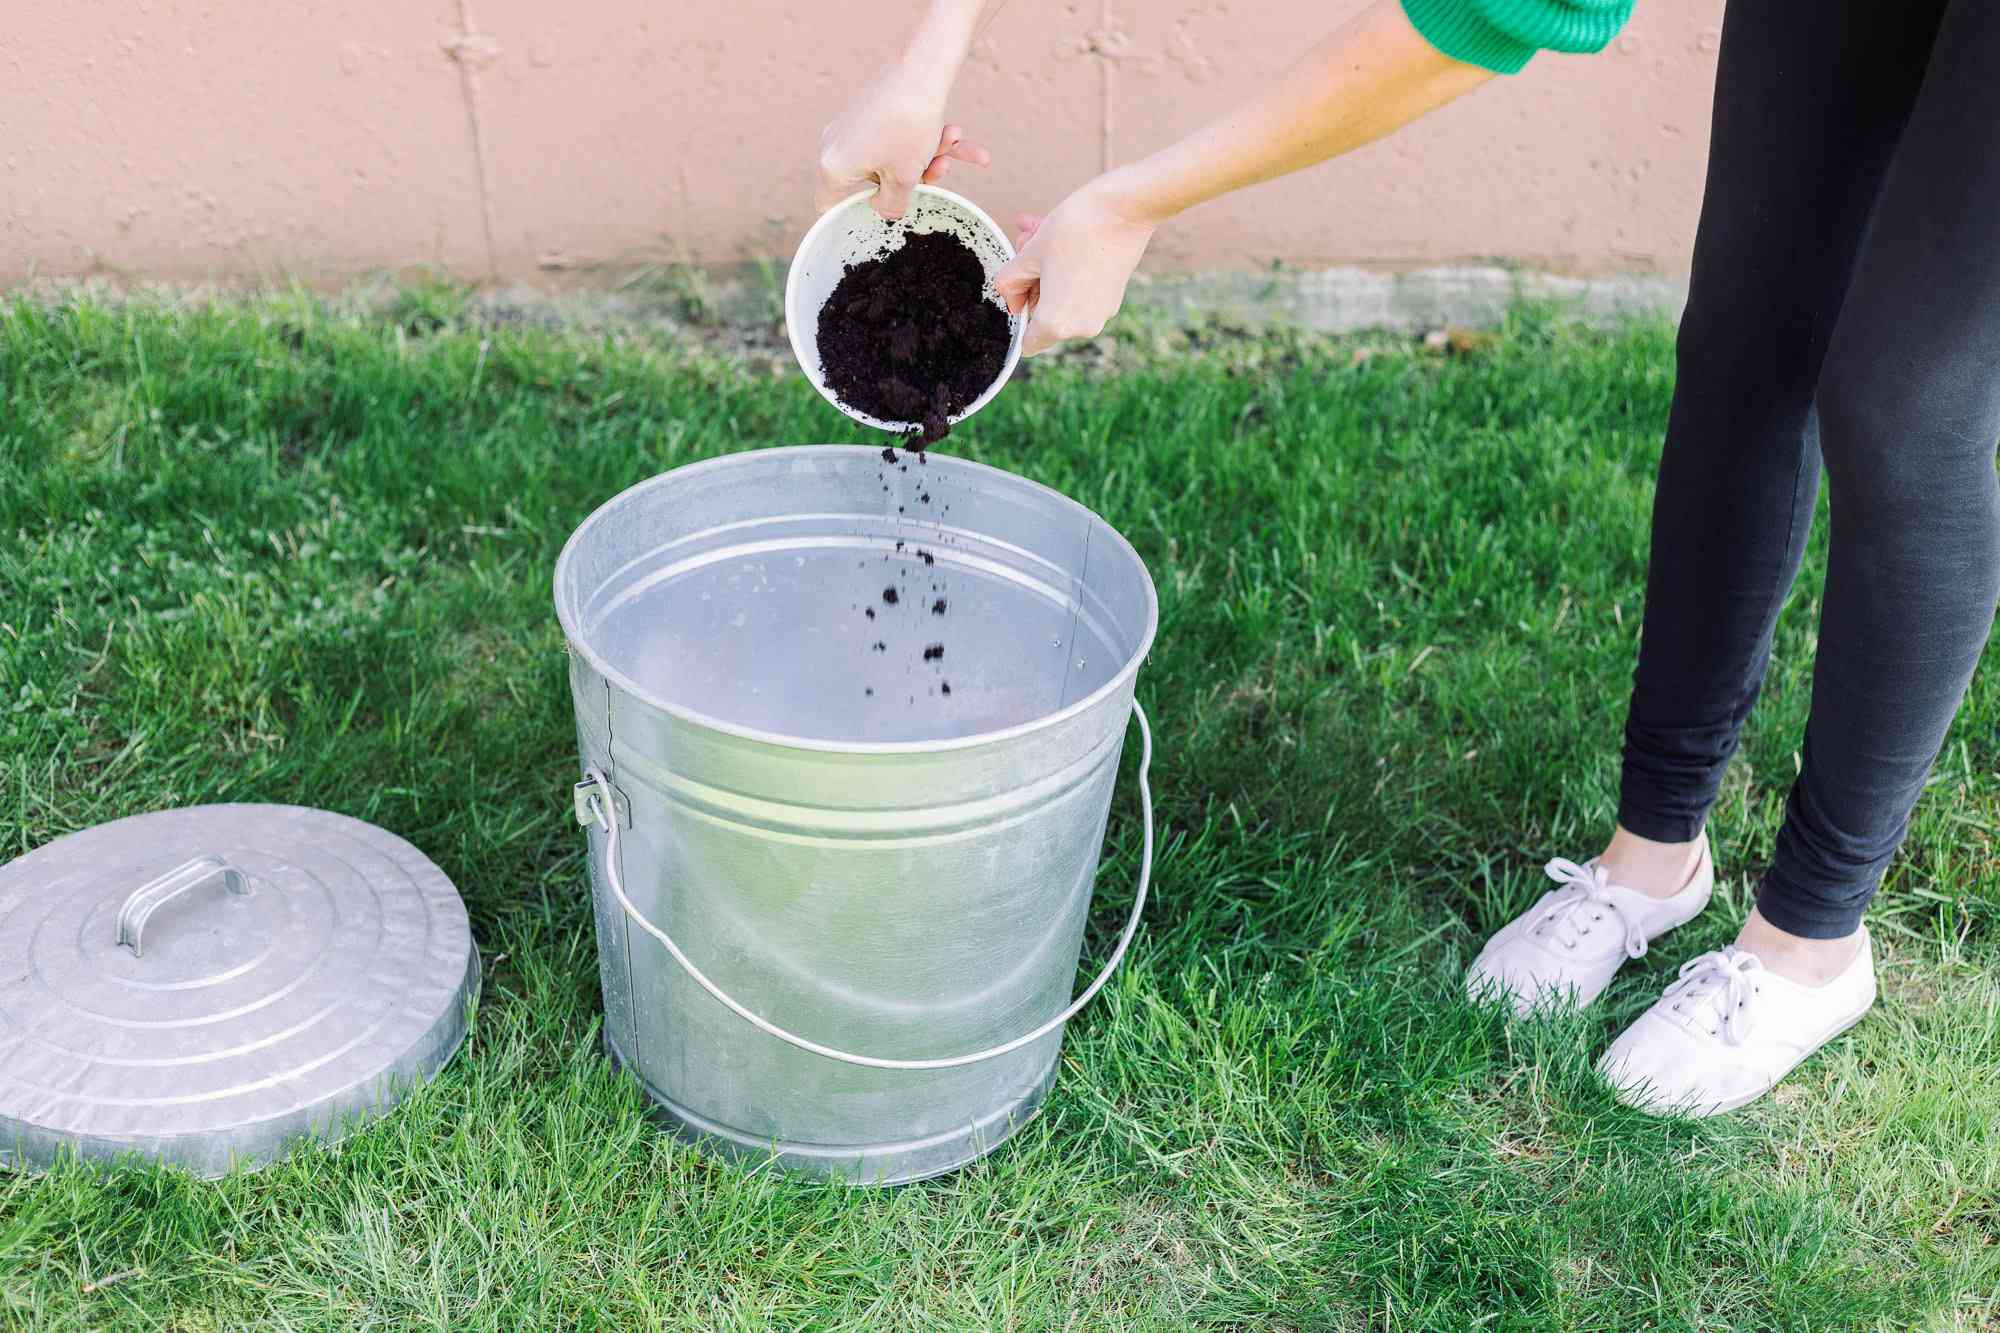 adding coffee grounds to a compost bin